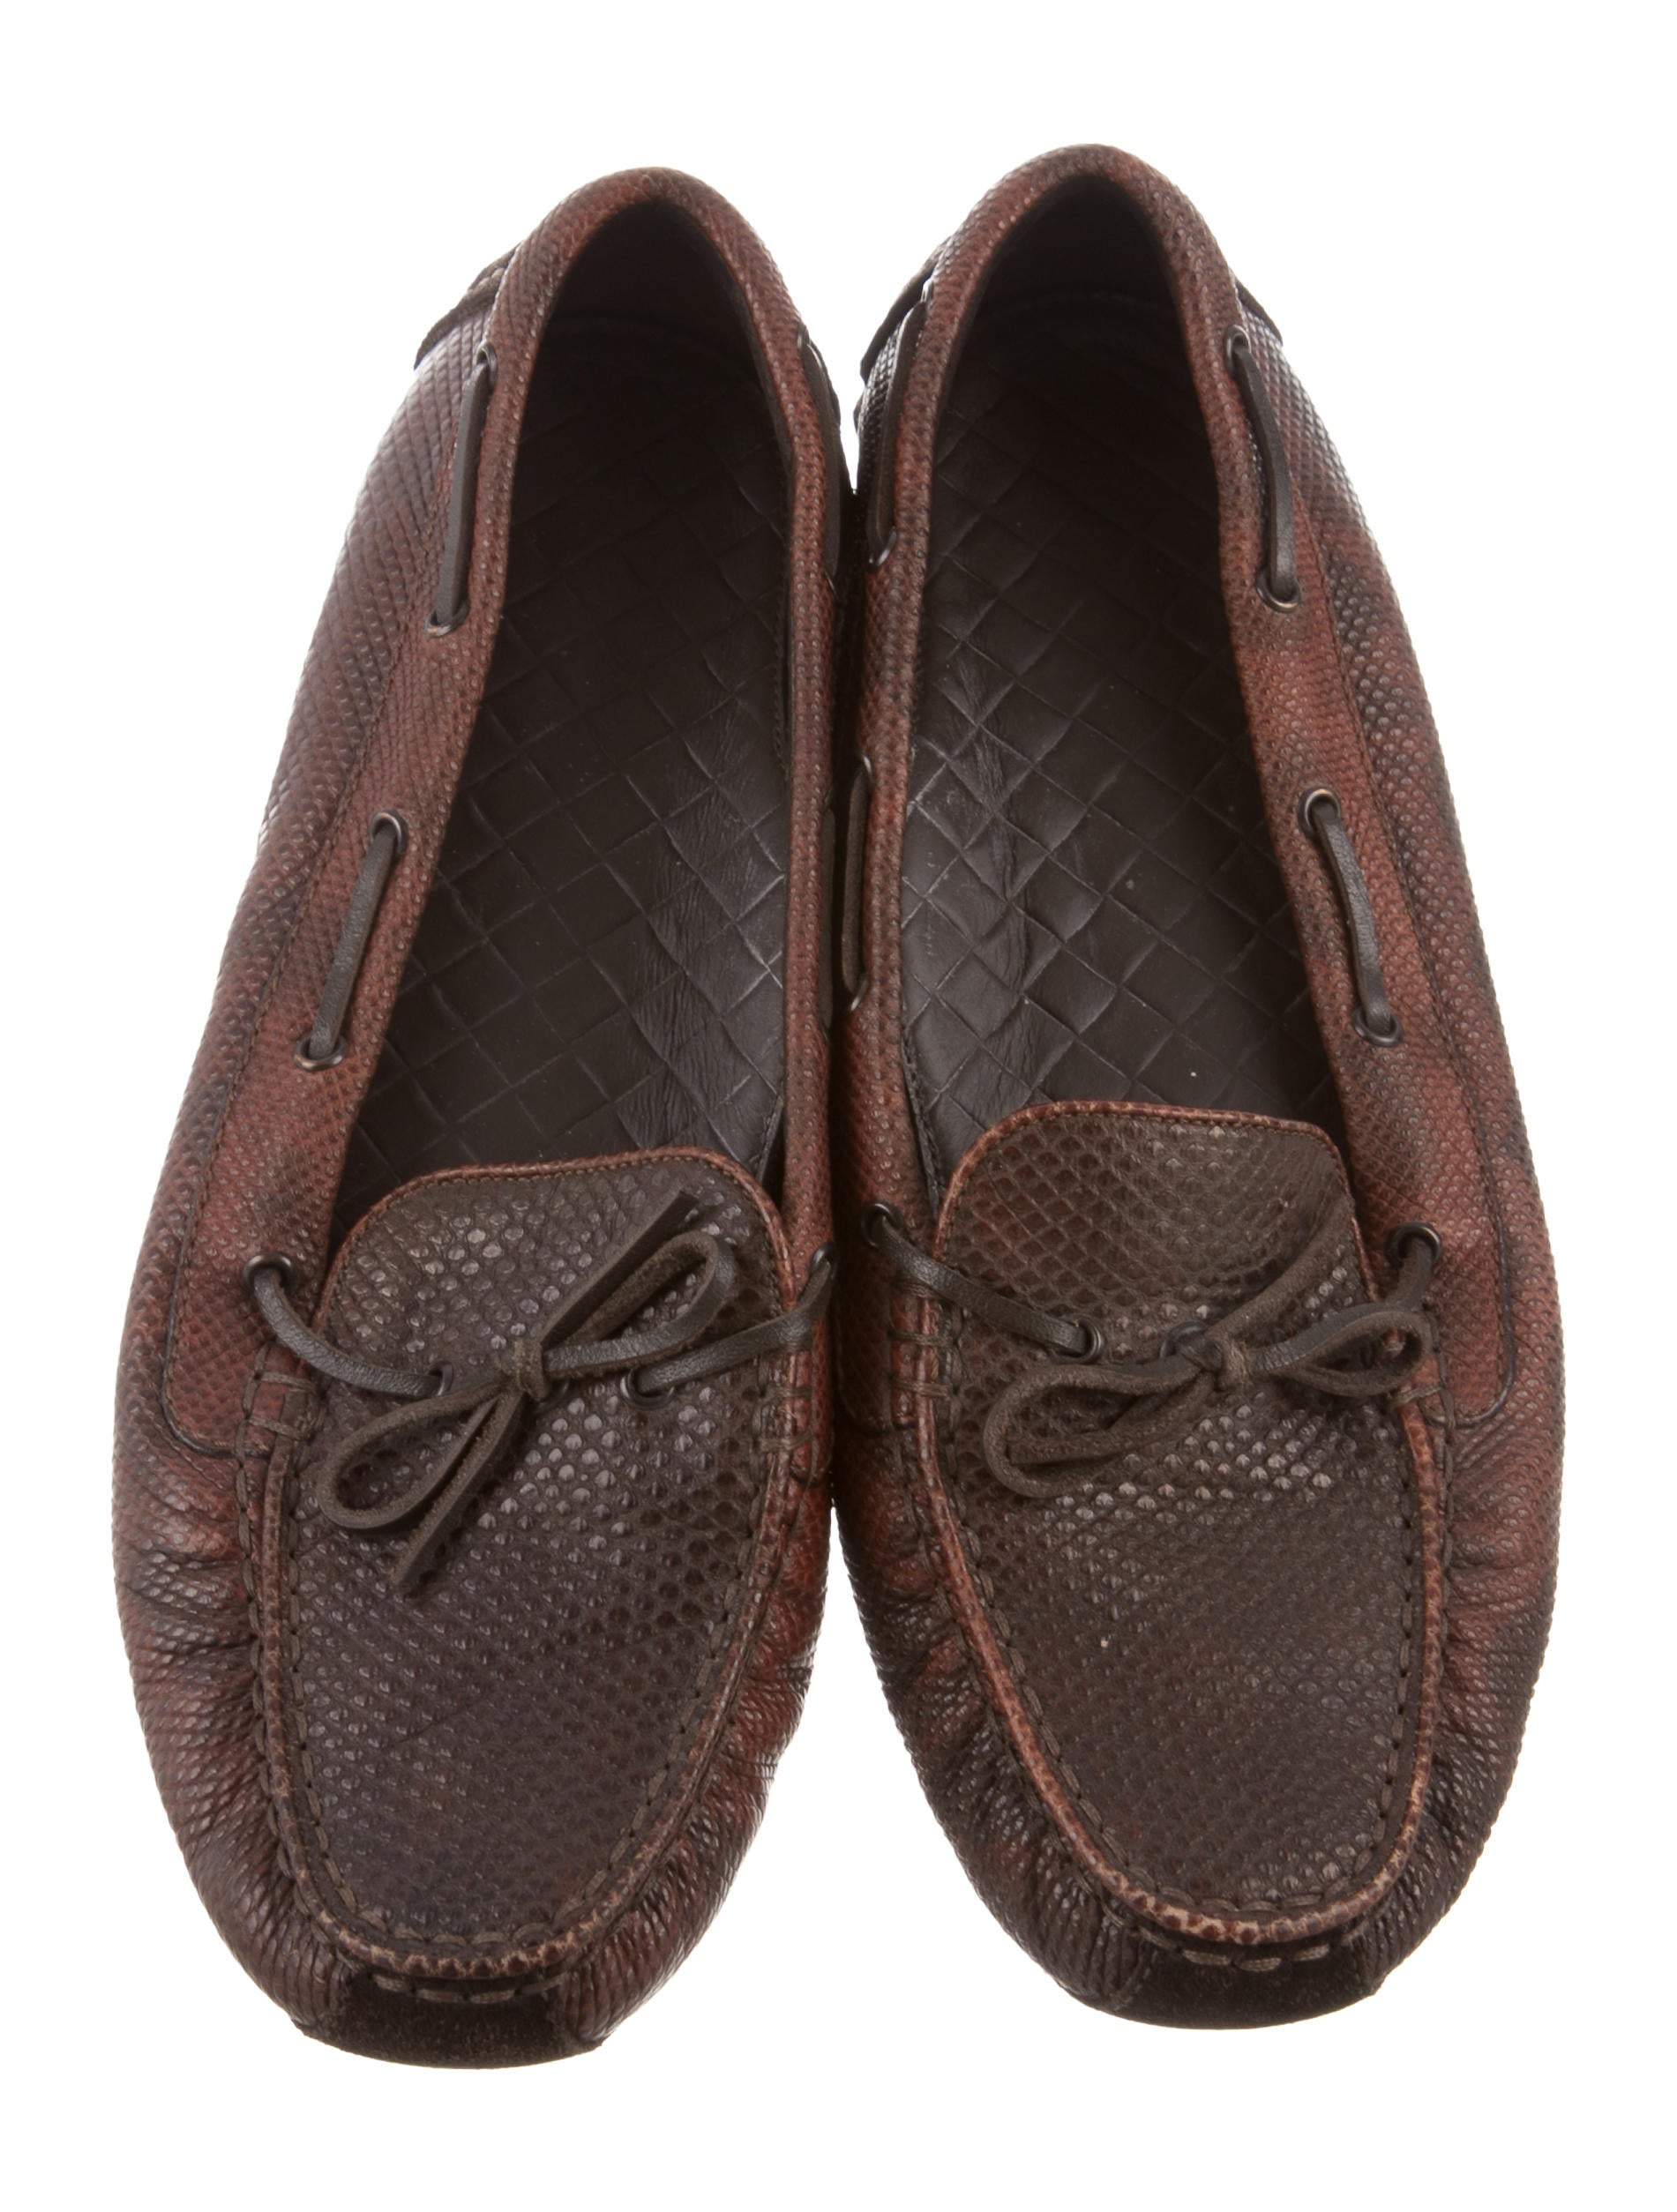 get authentic cheap online Bottega Veneta Lizard Square-Toe Loafers very cheap price footaction cheap online discounts sale online cheap sale best prices WI96KCc